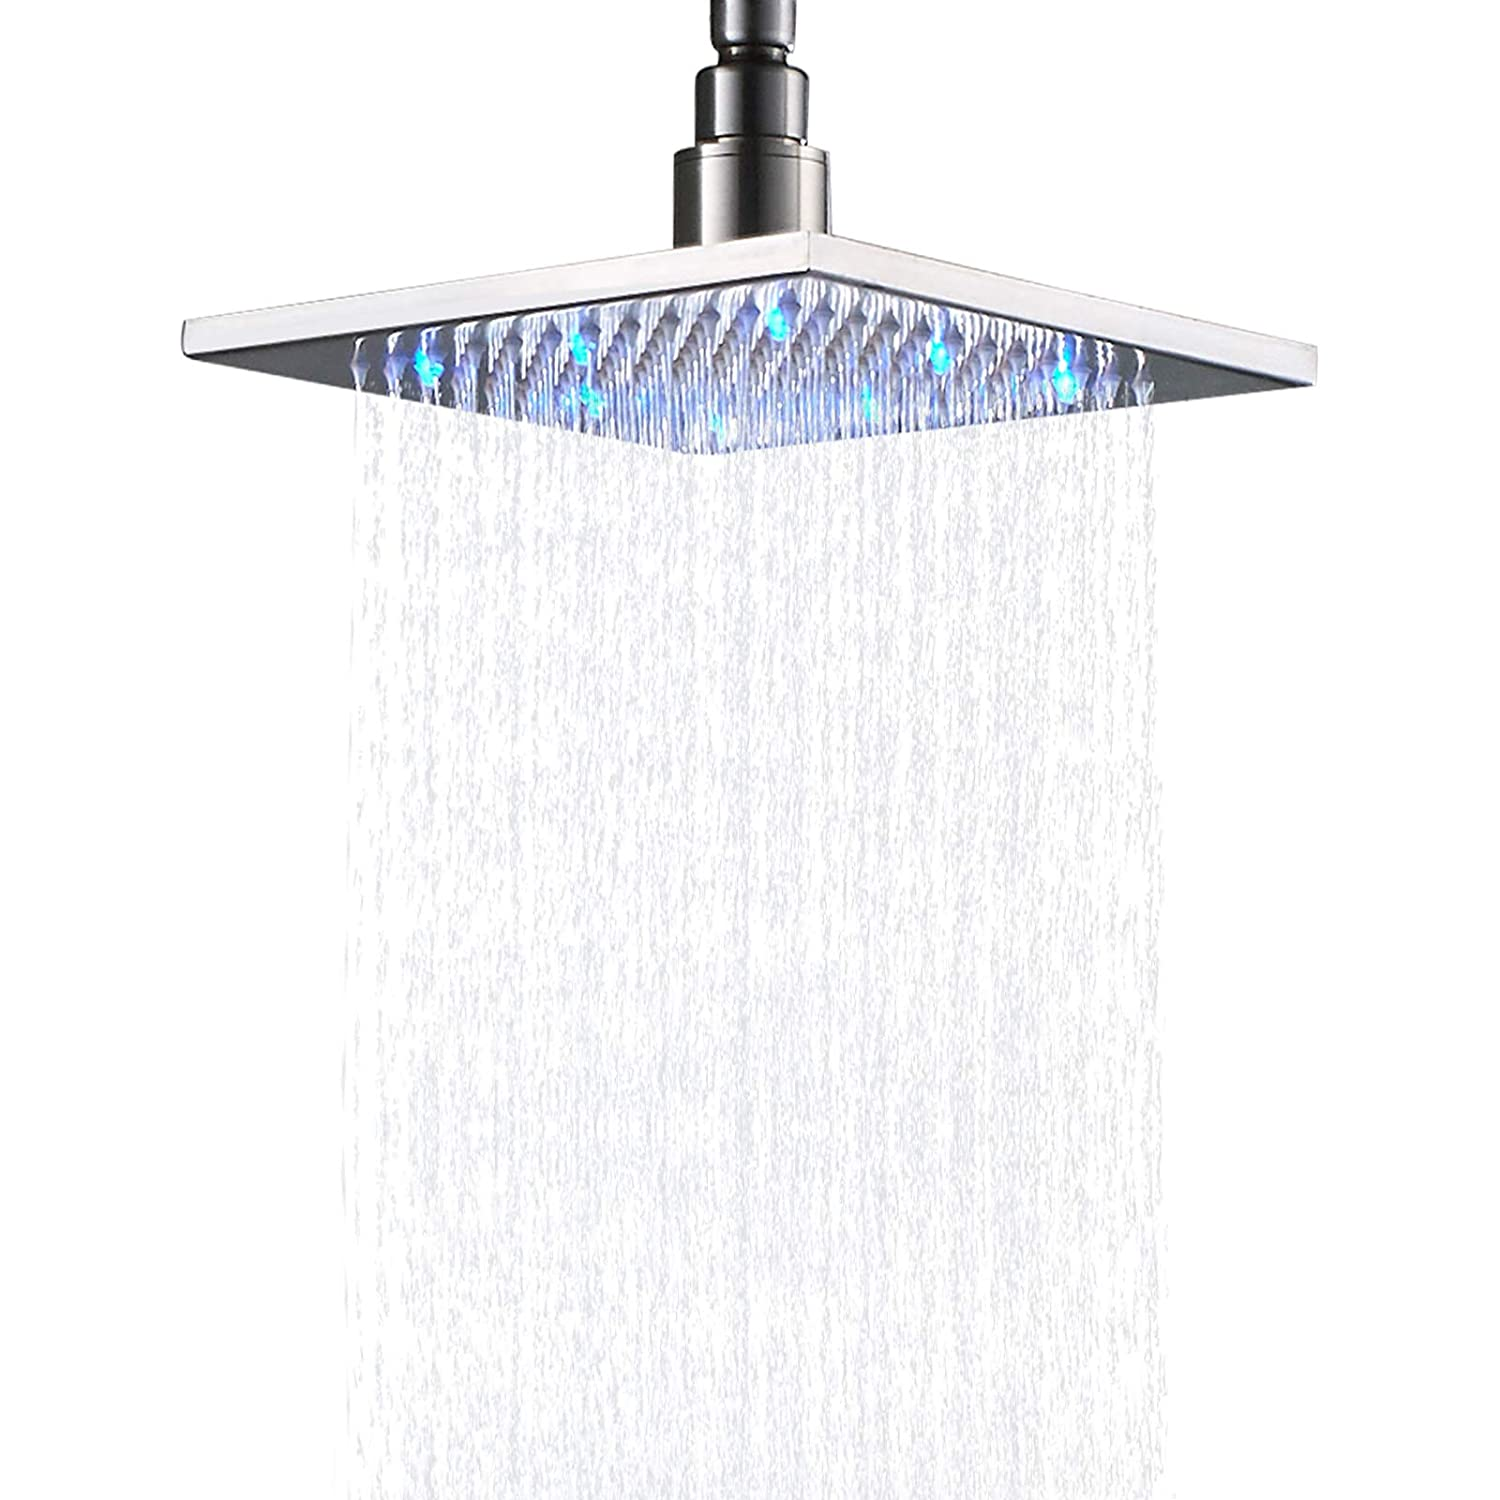 Stainless Steel 16 Inch LED Square Rain Shower Head Top Sprayer Brushed Nickel